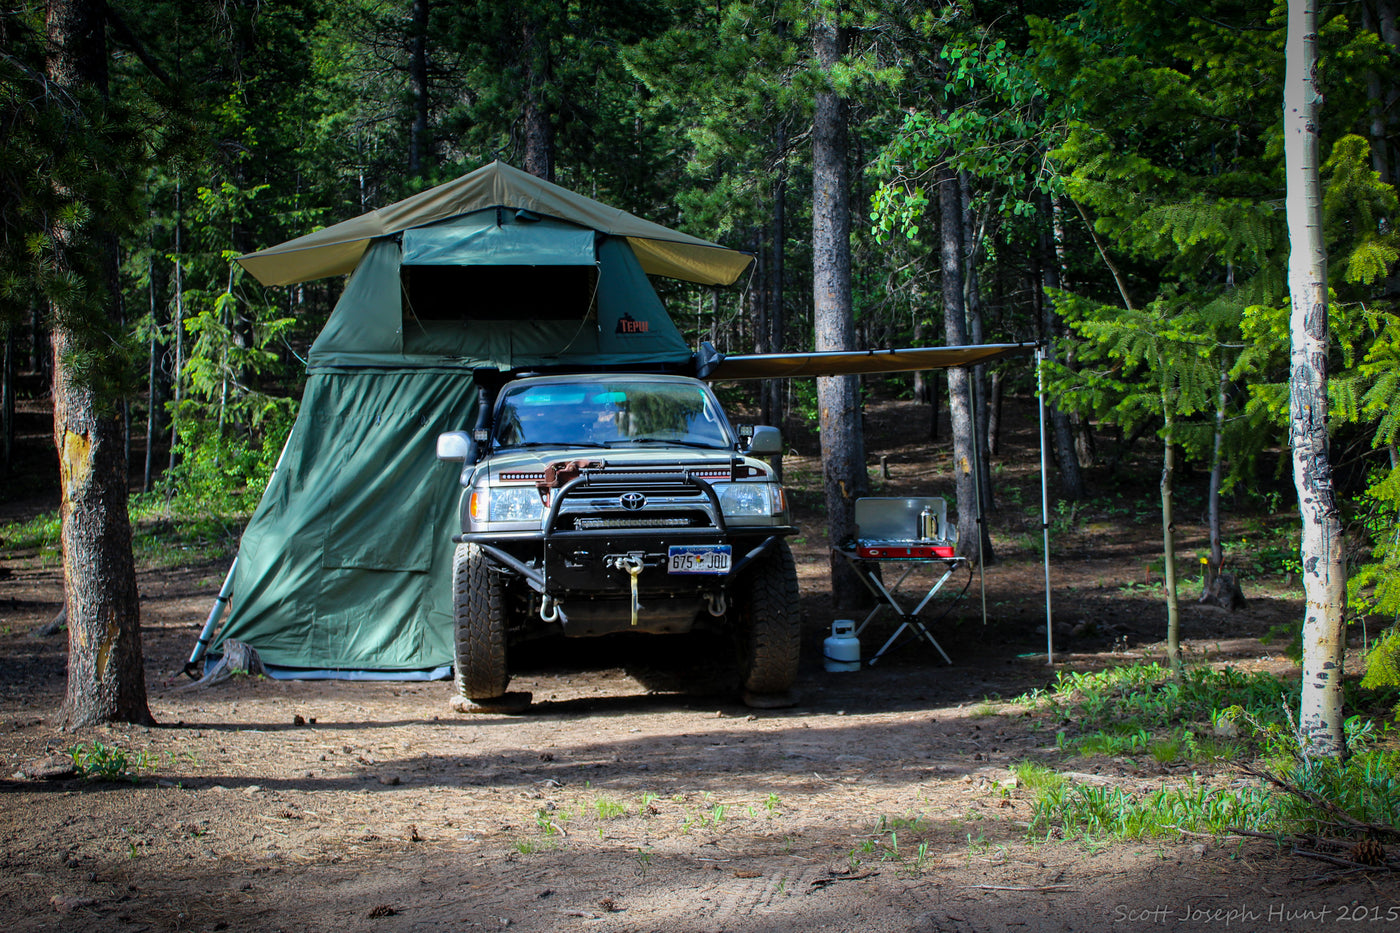 Awning Awning ... & Awning u2013 Tepui Tents | Roof Top Tents for Cars and Trucks